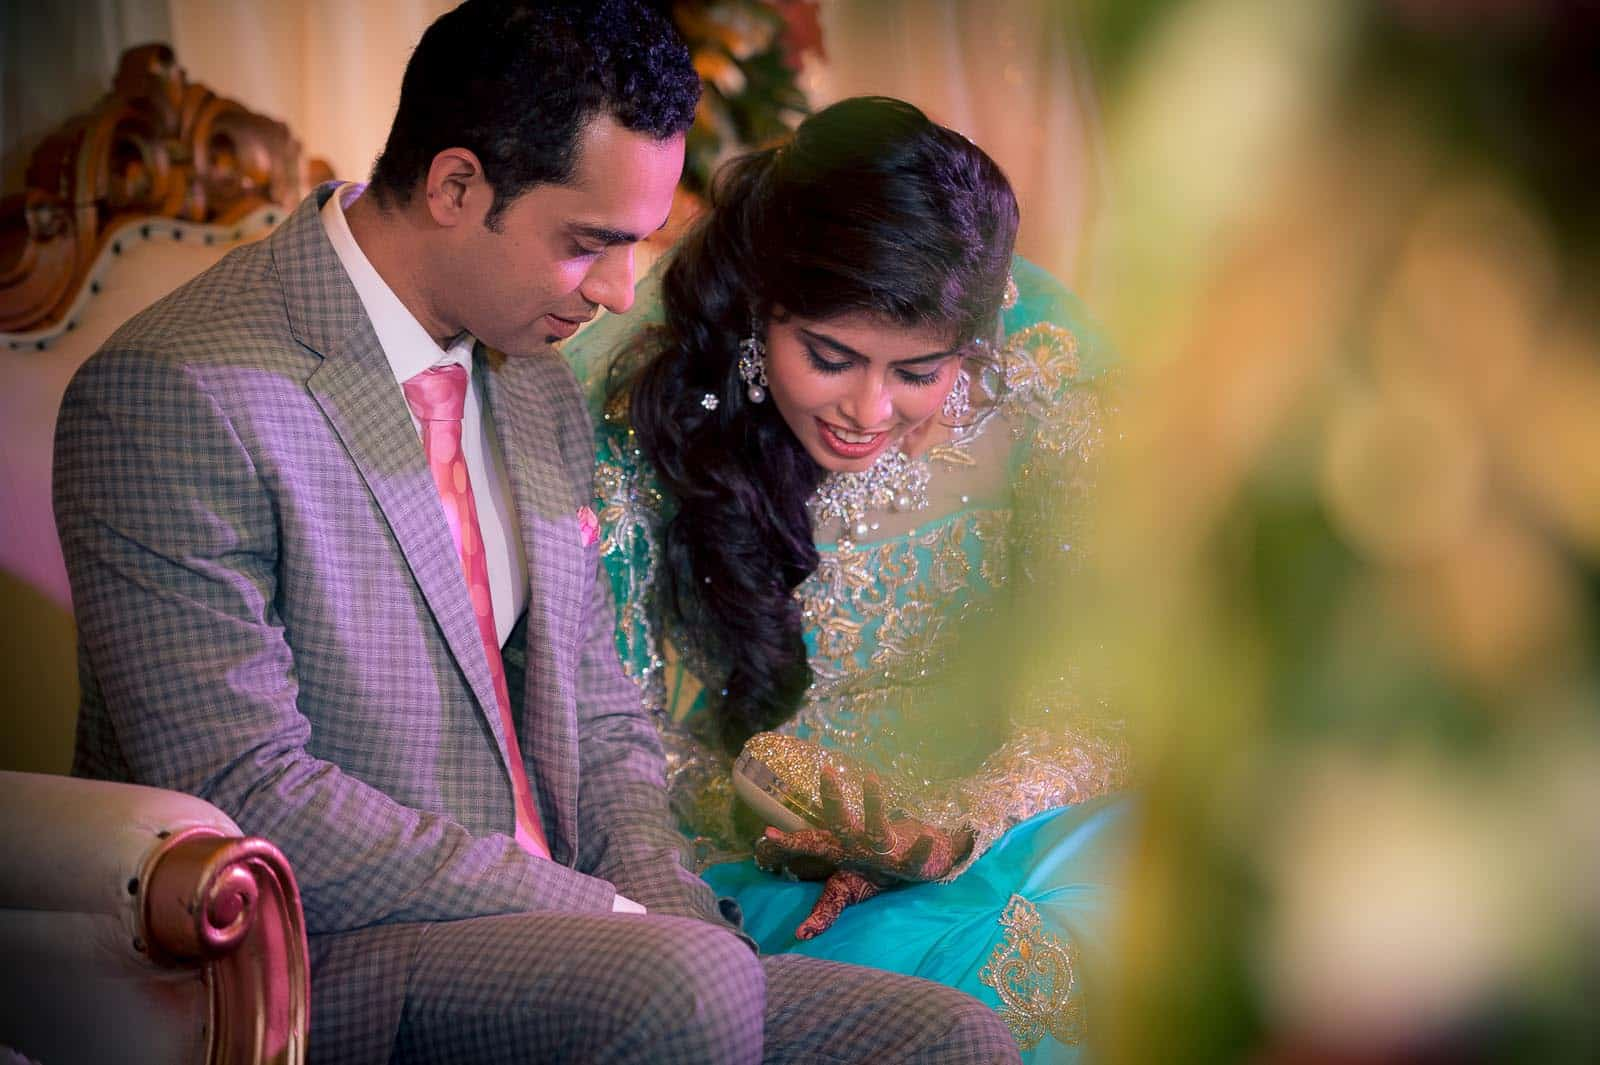 anoop-wedding-photographer-engagement-bride-groom-ring